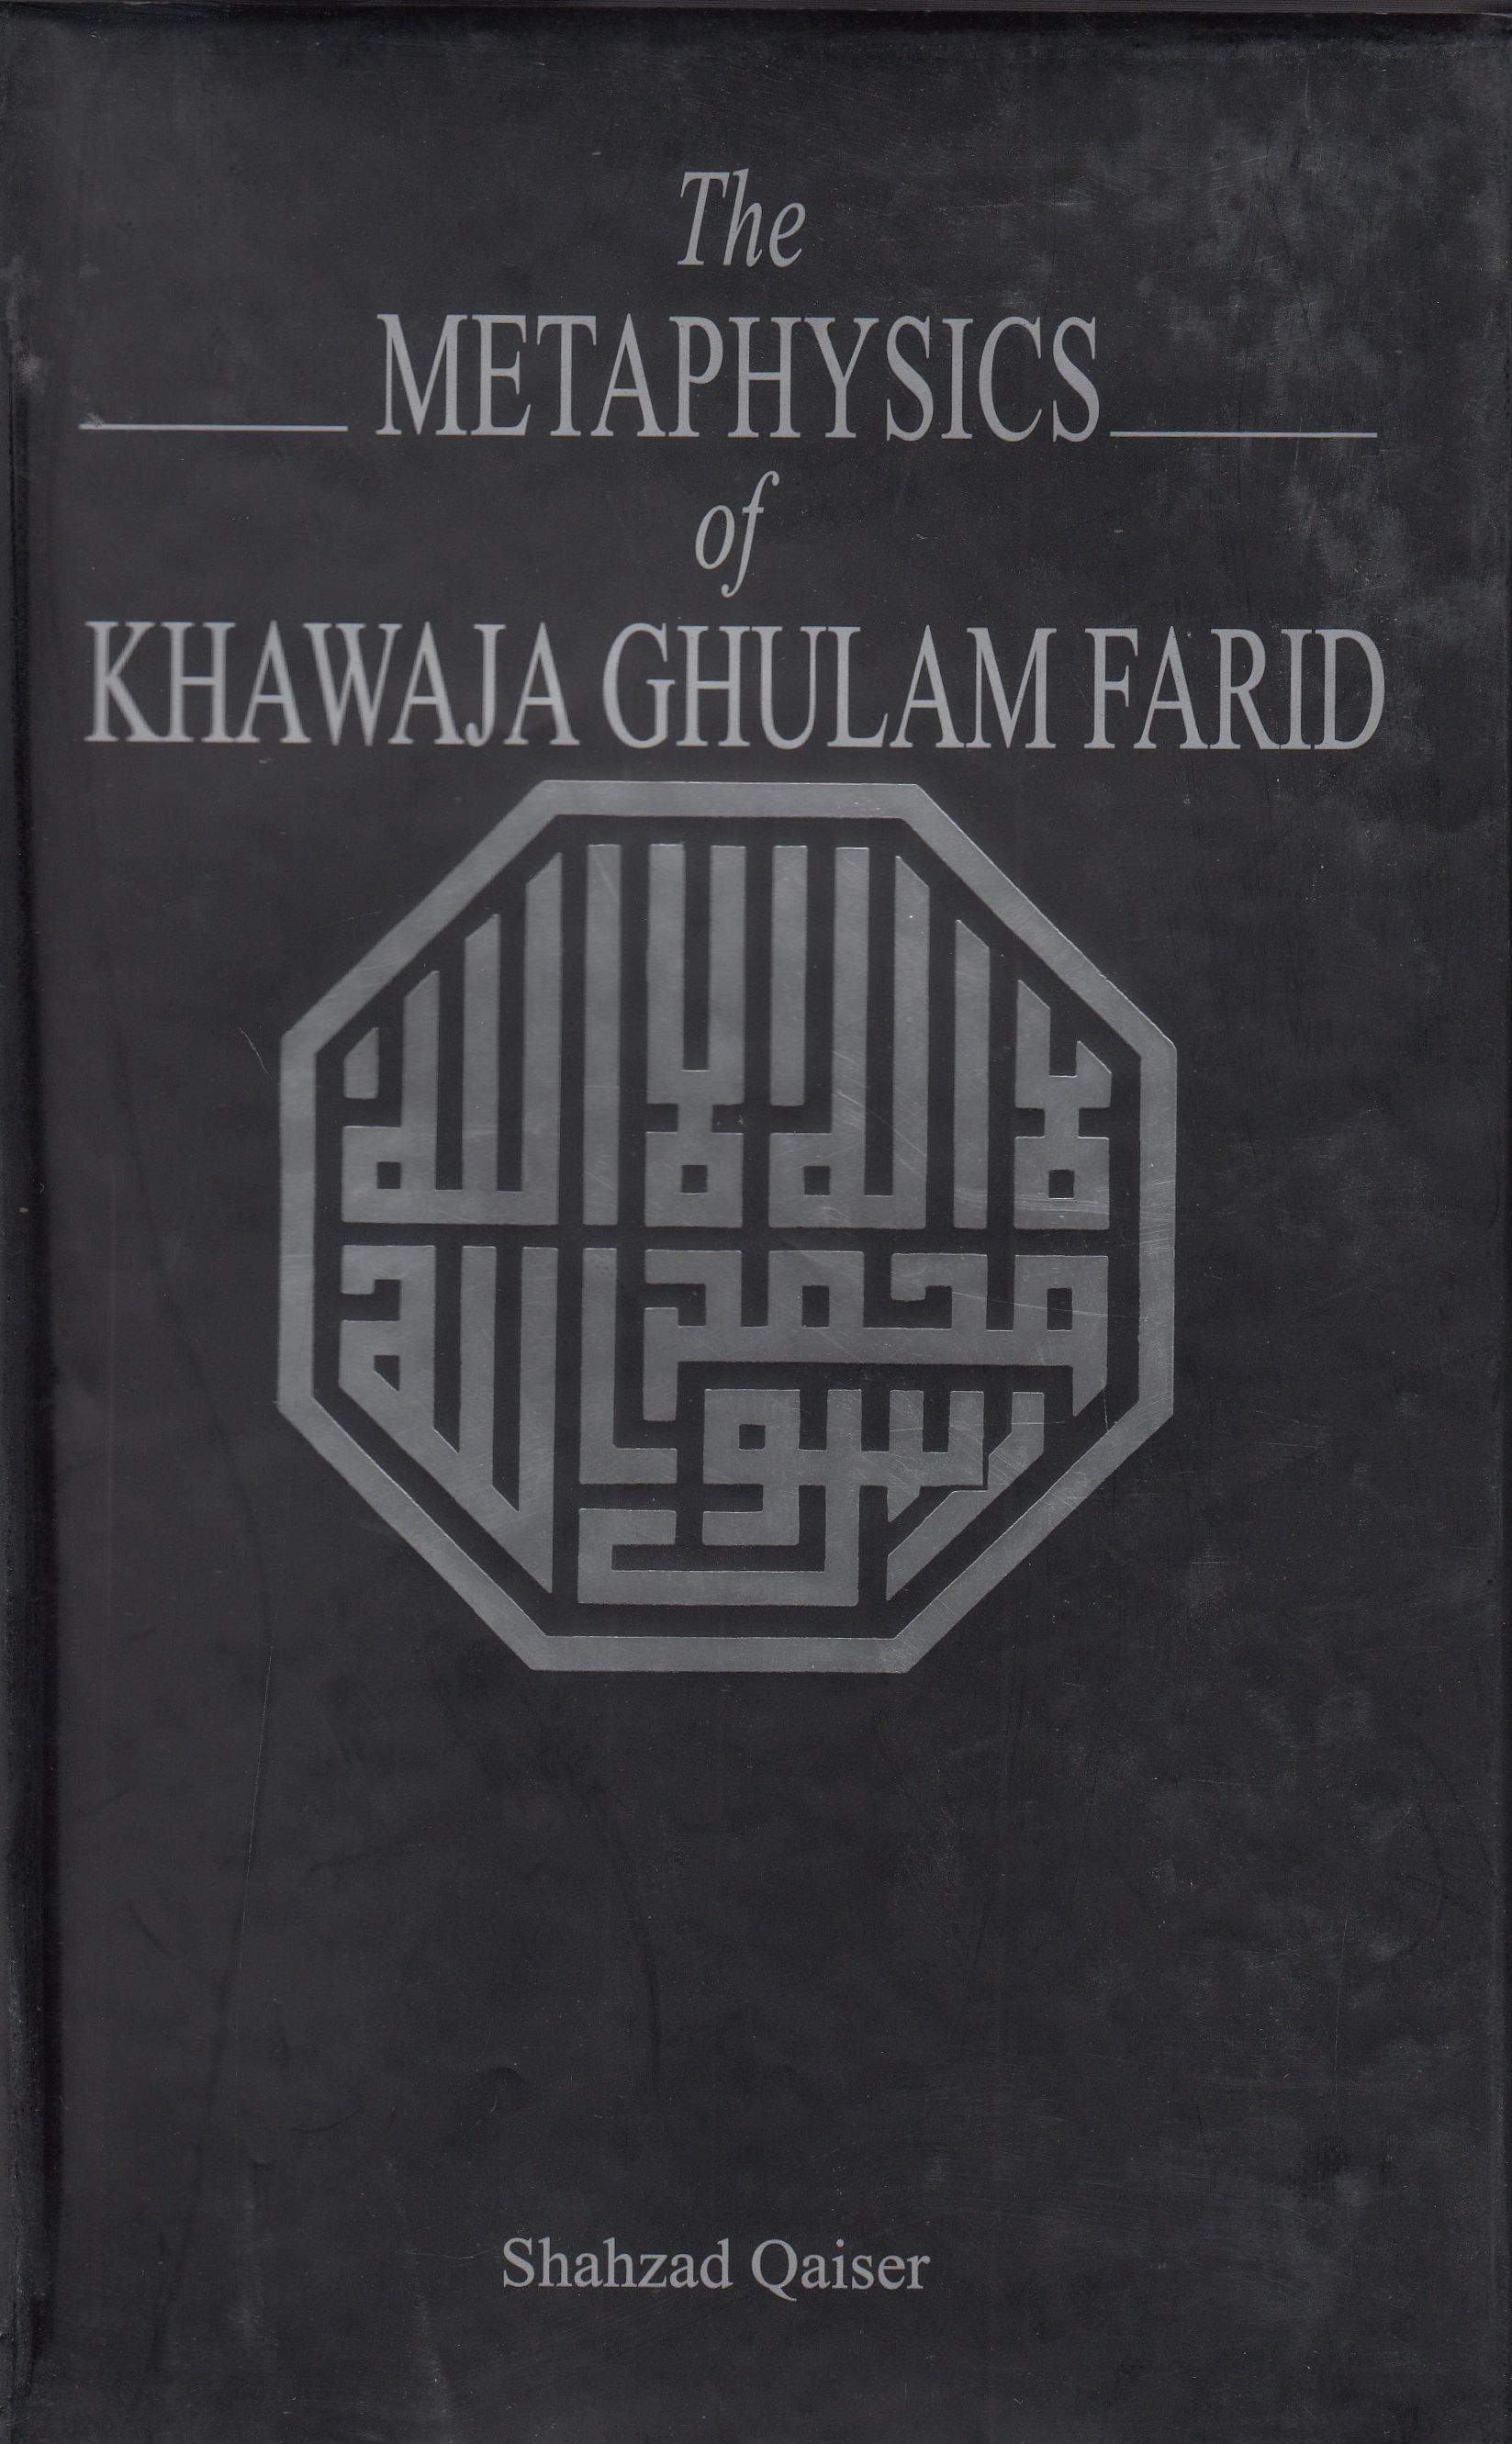 The Metaphysics of Khawaja Ghulam Farid -